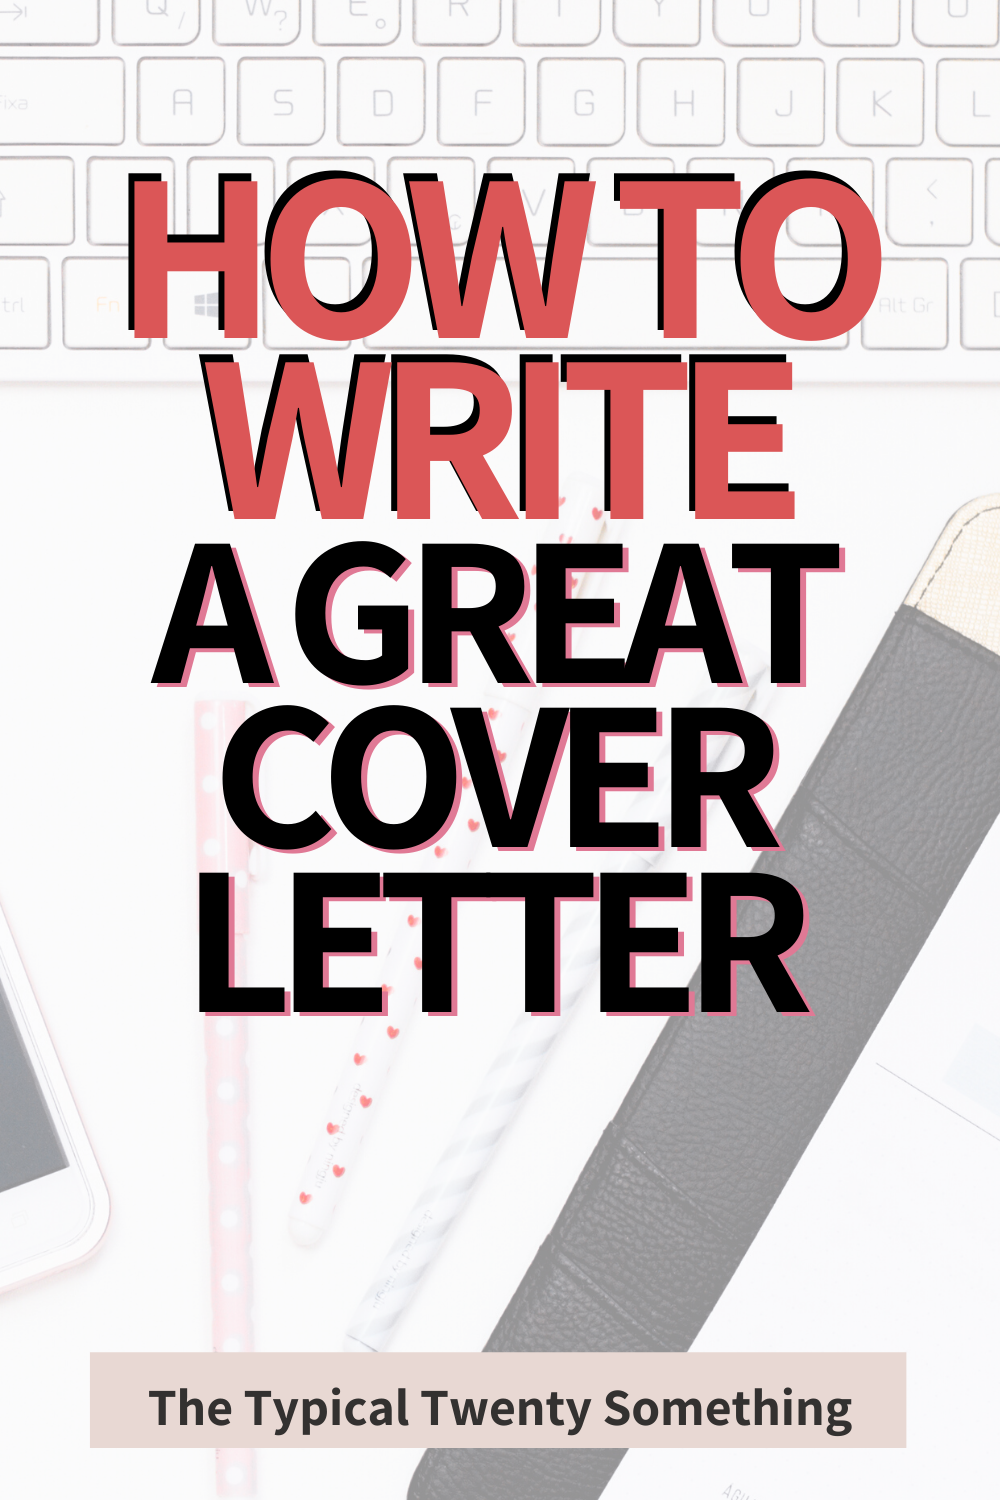 How to write a great cover letter in 2020. Writing a great cover letter is not easy, here is a step by step guide and tips to writing a great cover letter, along with examples! cover letter, cover letter examples, cover letter examples, cover letters for resume, cover letter for teachers, cover letter tips, design, for job application, how to write a